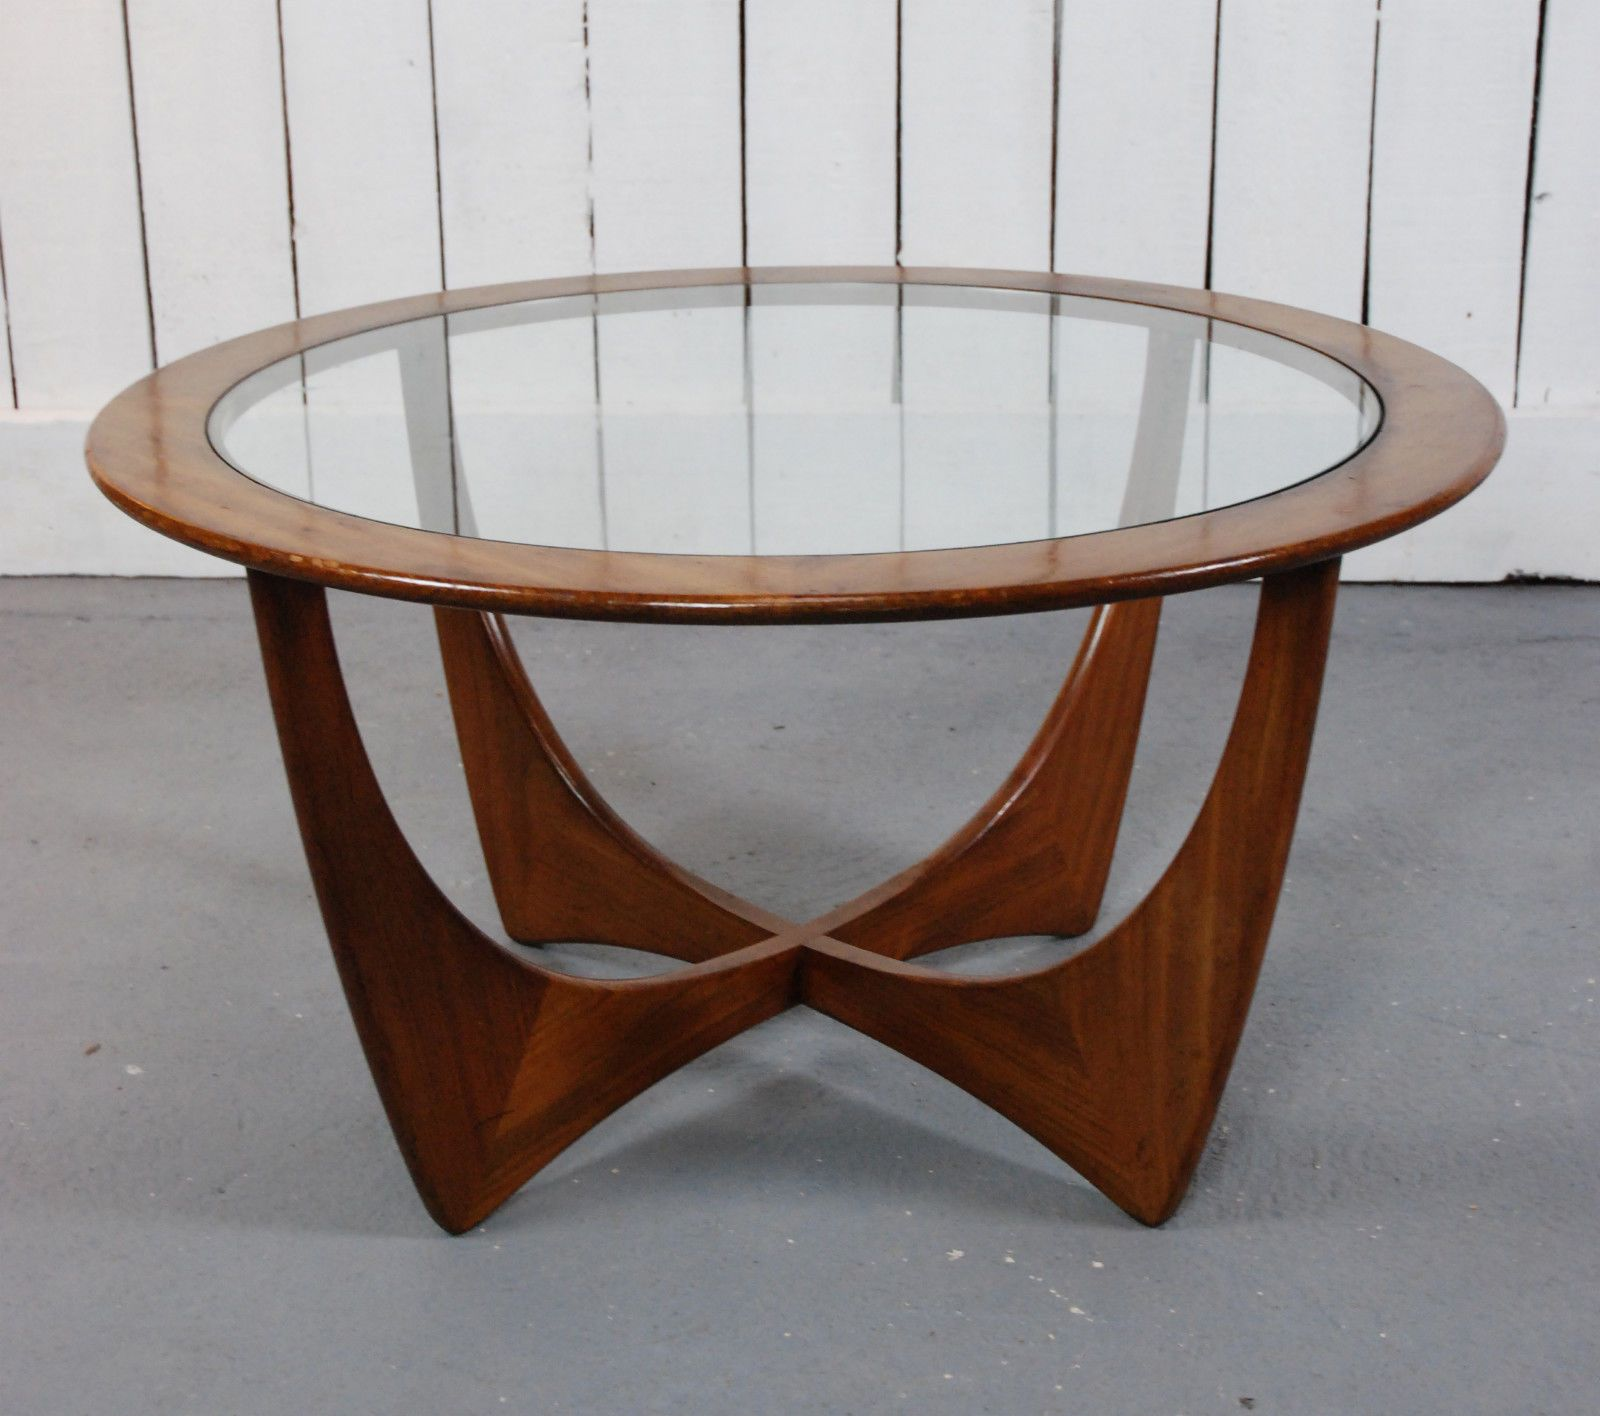 Retro teak g plan astro coffee table vintage danish style